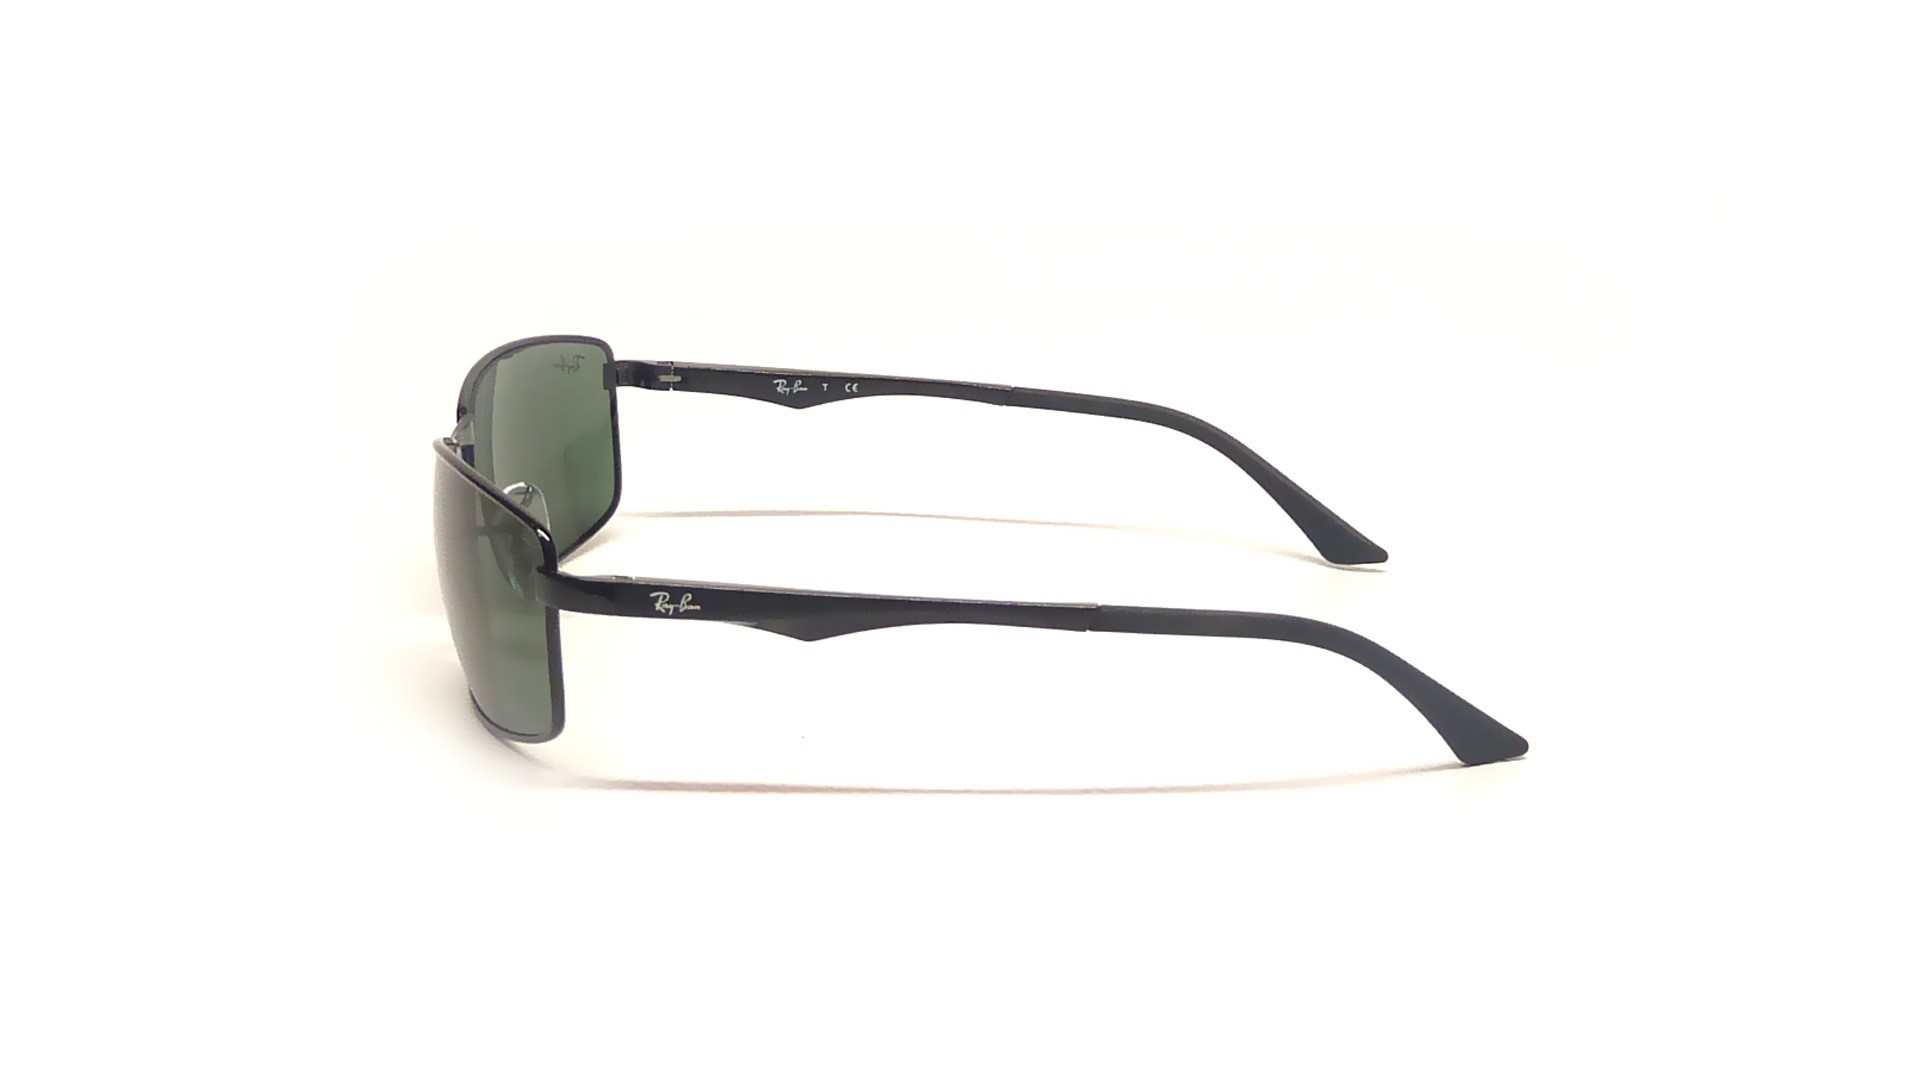 8e6998a10e Sunglasses Ray-Ban RB3498 002 71 61-17 Black Large